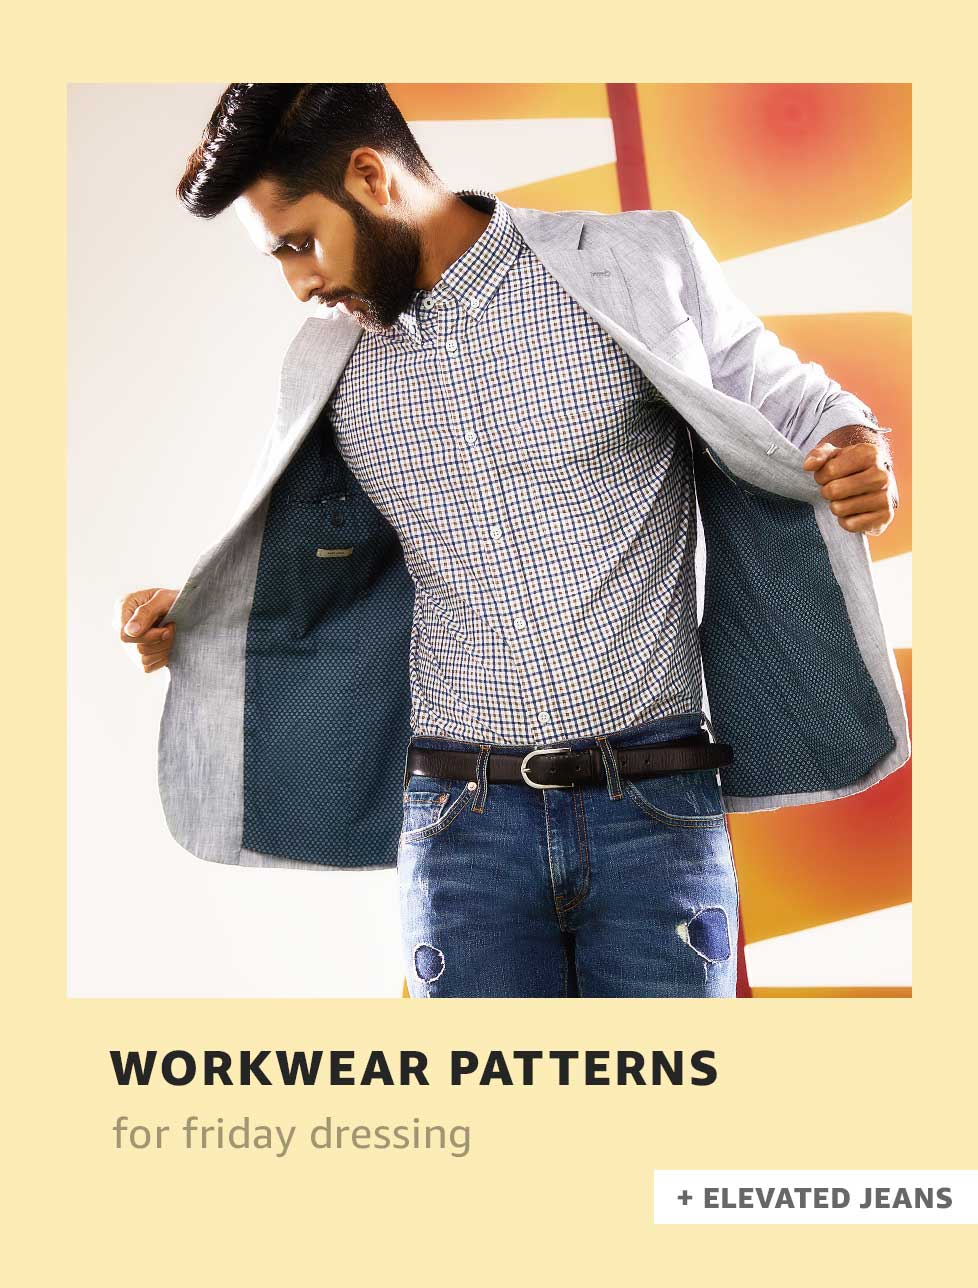 Workwear patterns